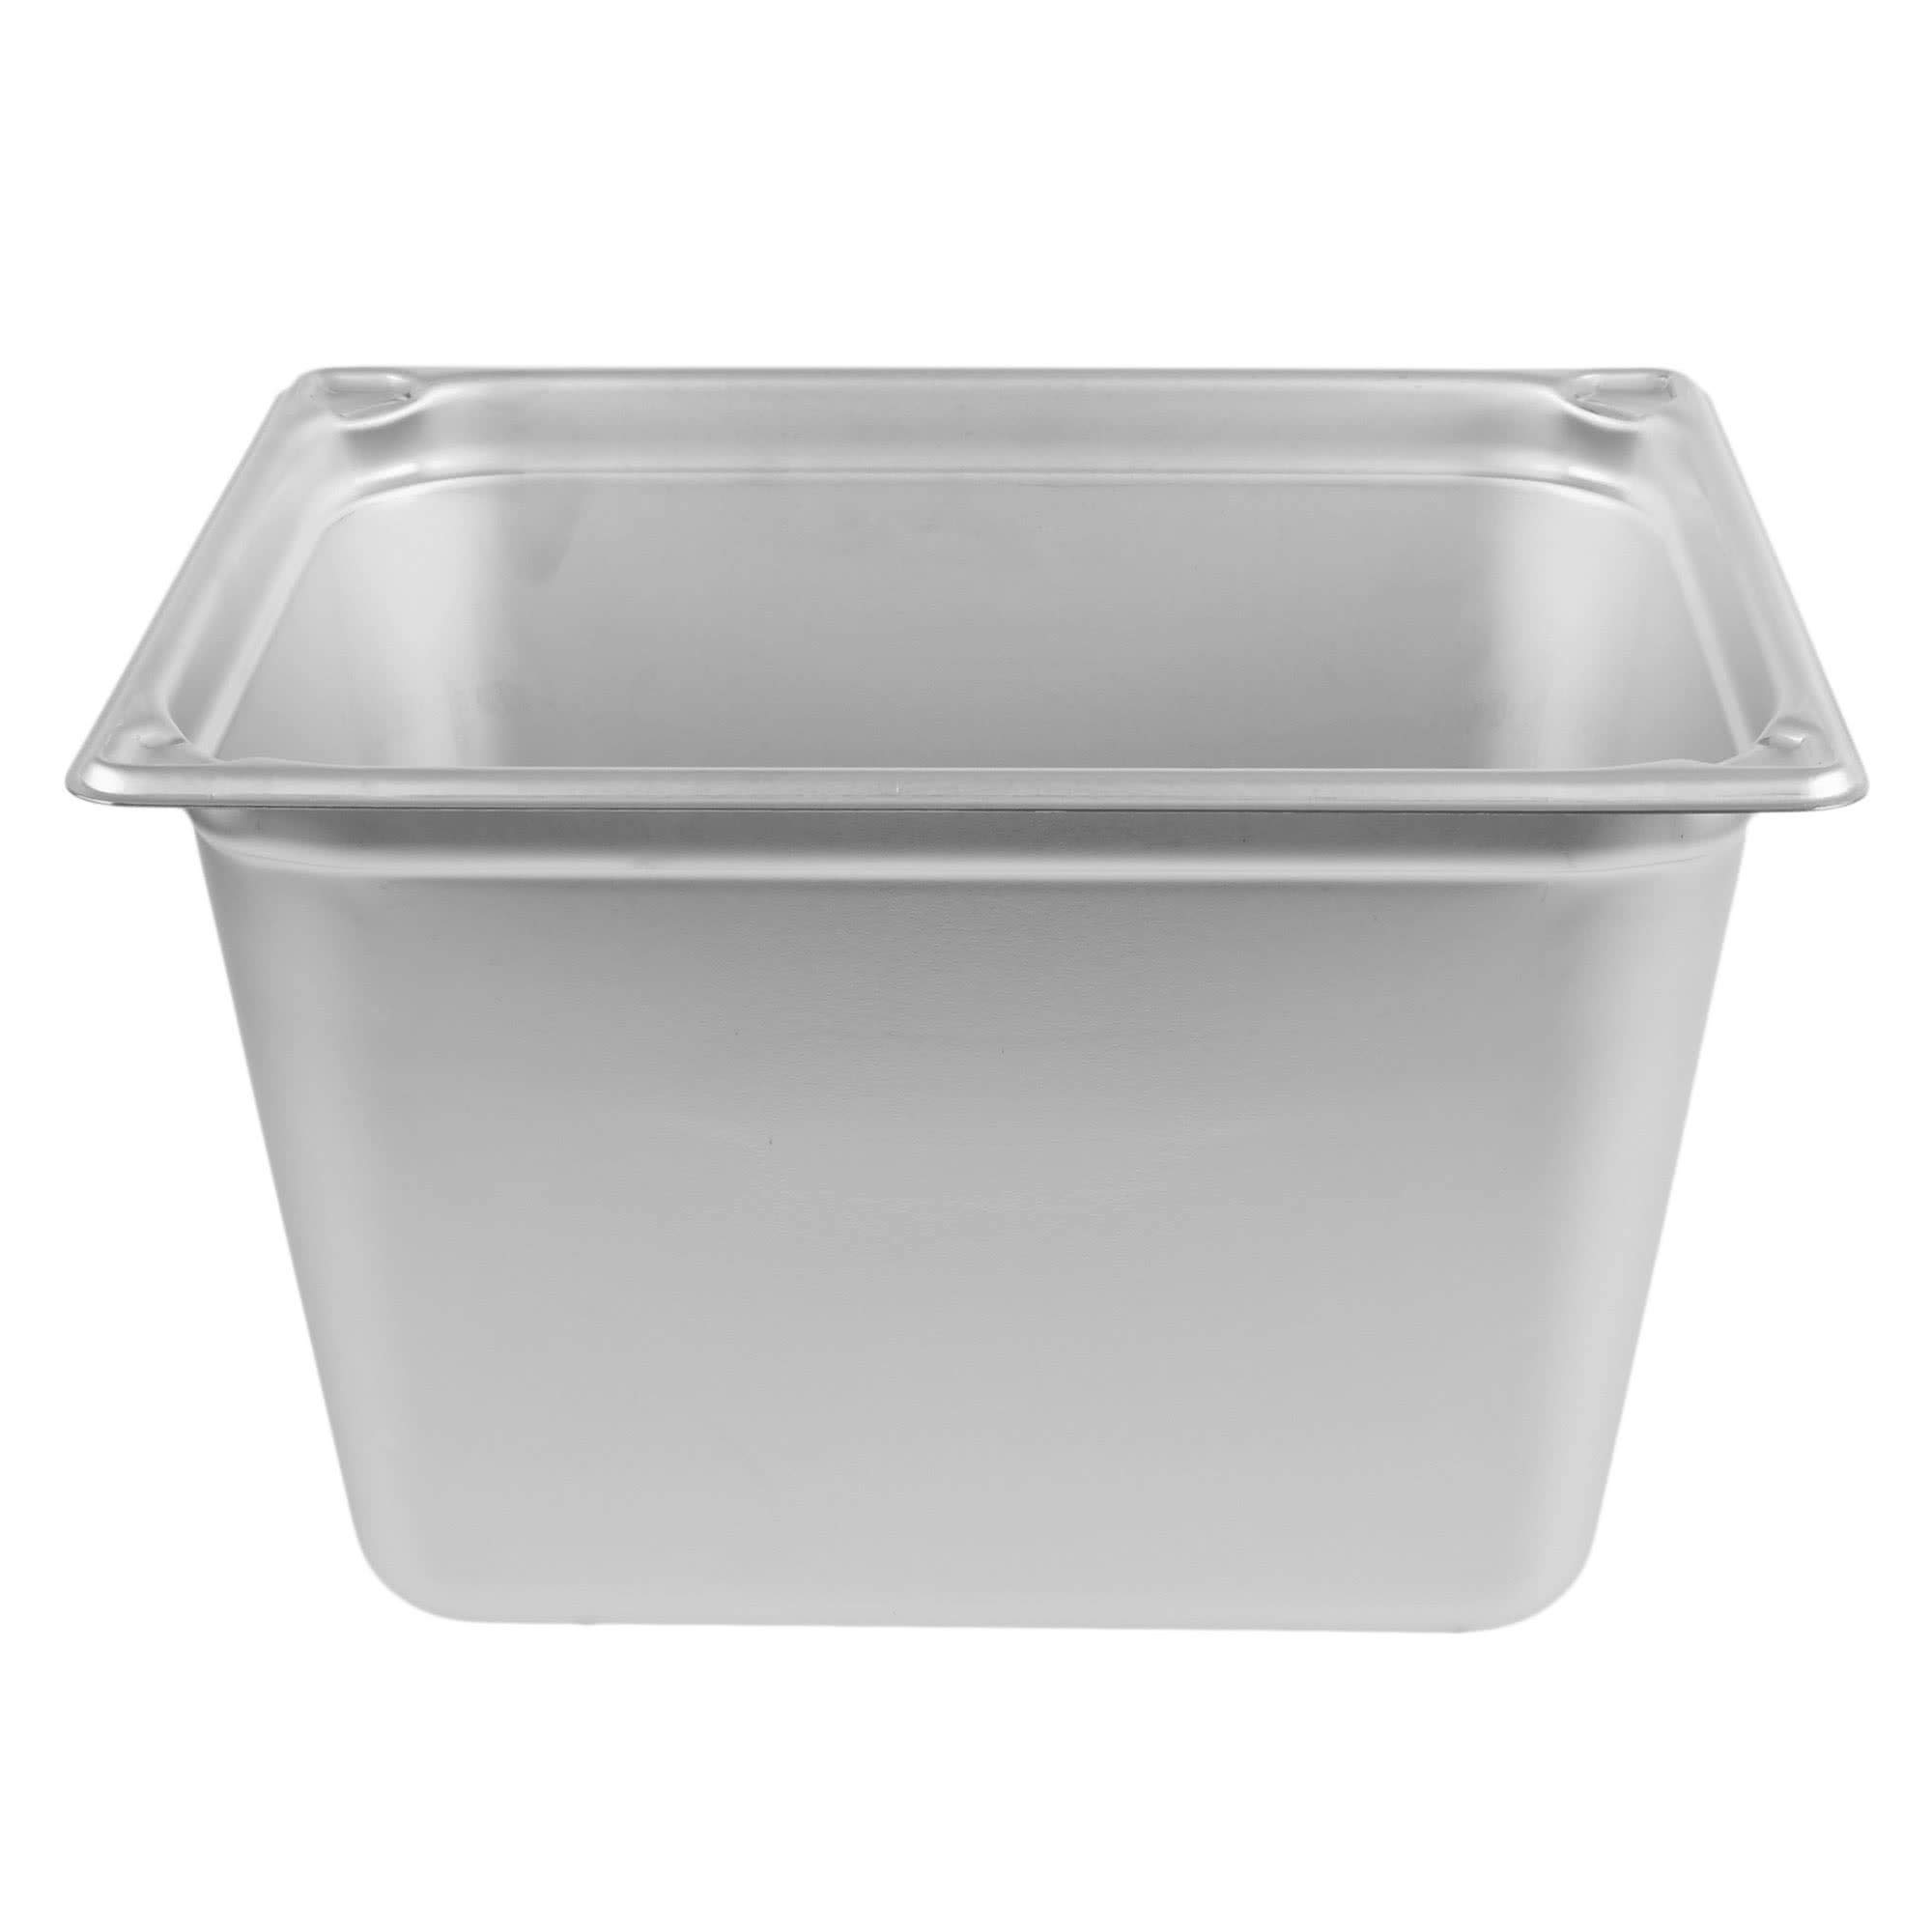 TableTop King 30288 Super Pan 8'' Deep Half Size Transport Pan by TableTop King